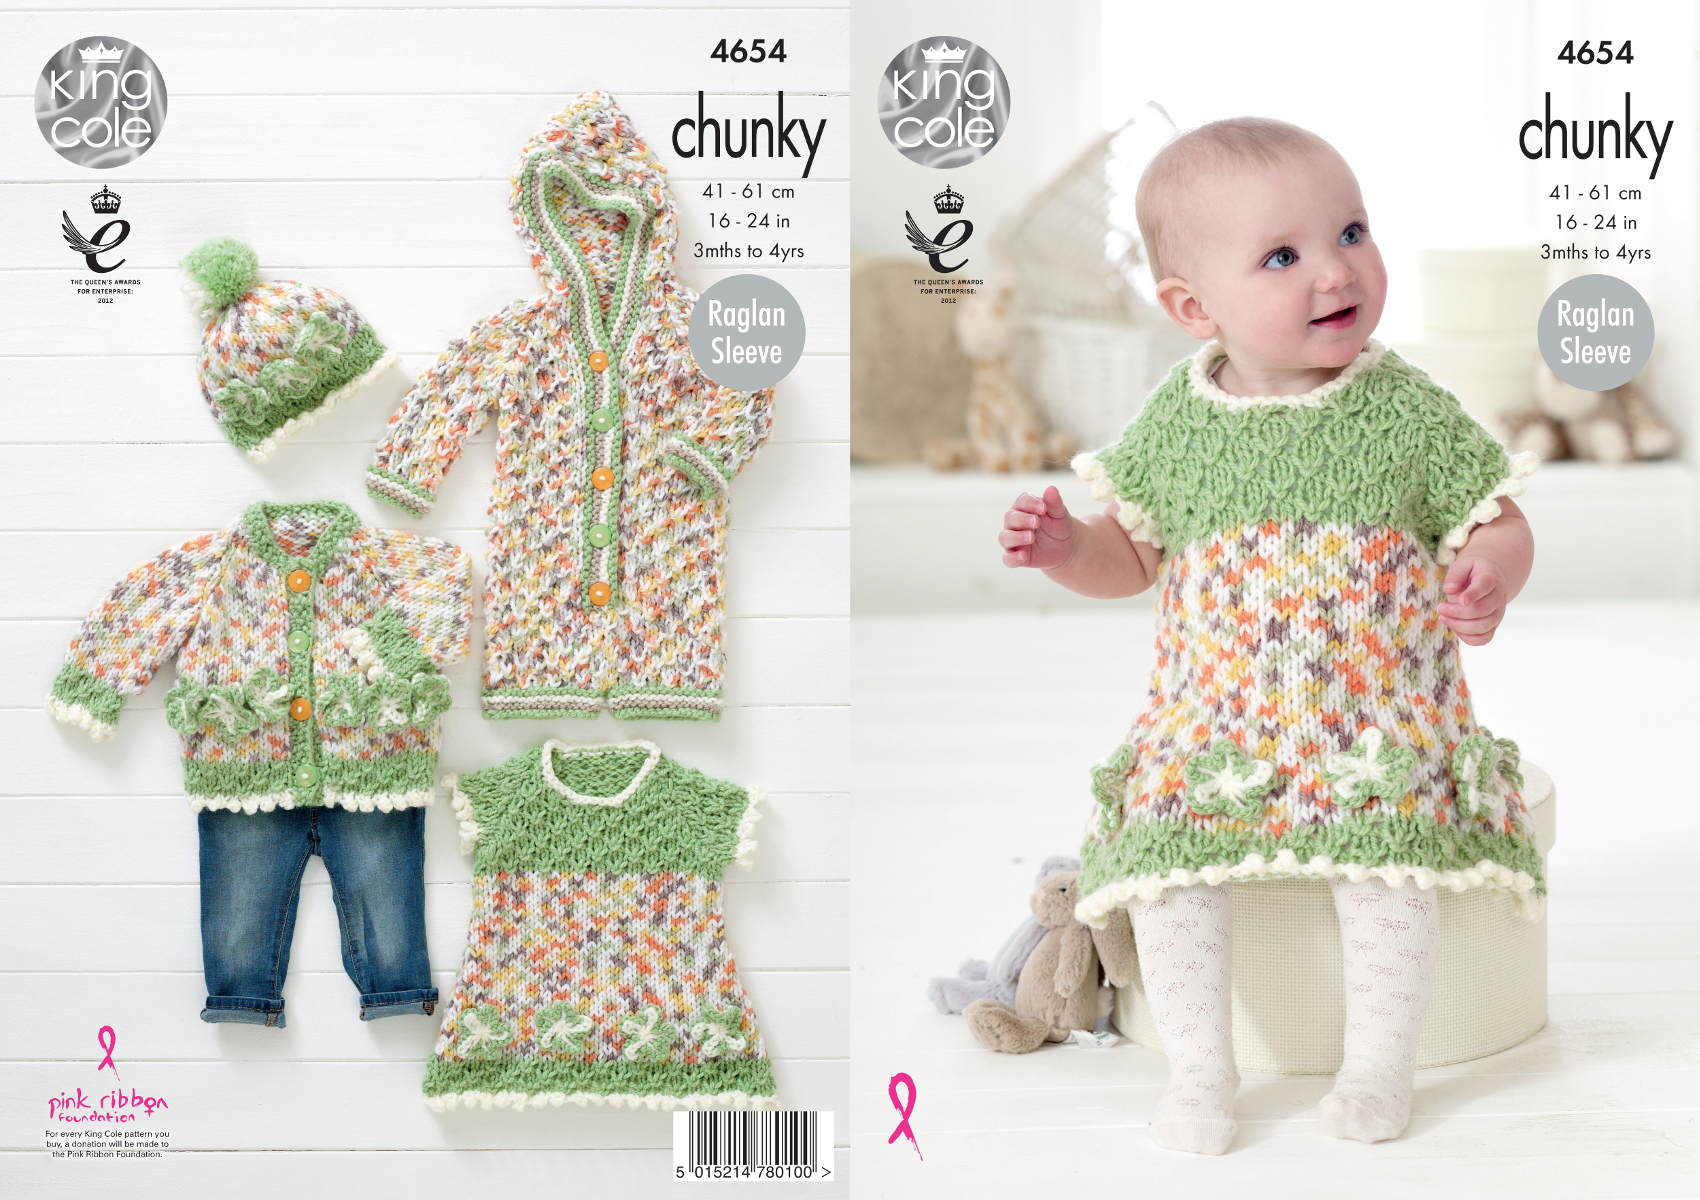 King Cole Baby Chunky Knitting Pattern Flower Dress Cardigan All In ...